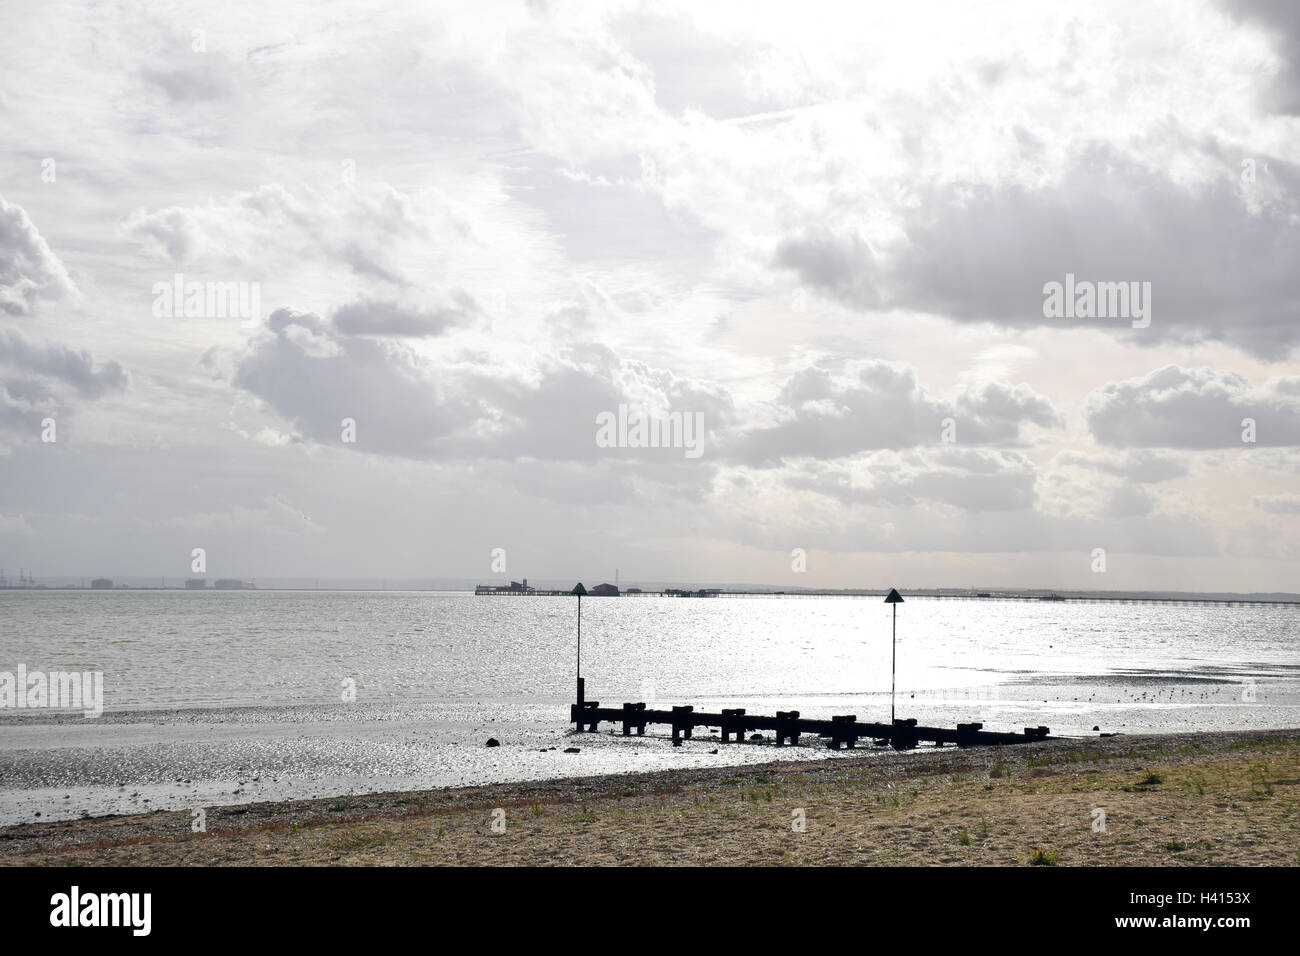 Southend-on-Sea with pier in the background, Essex UK - Stock Image